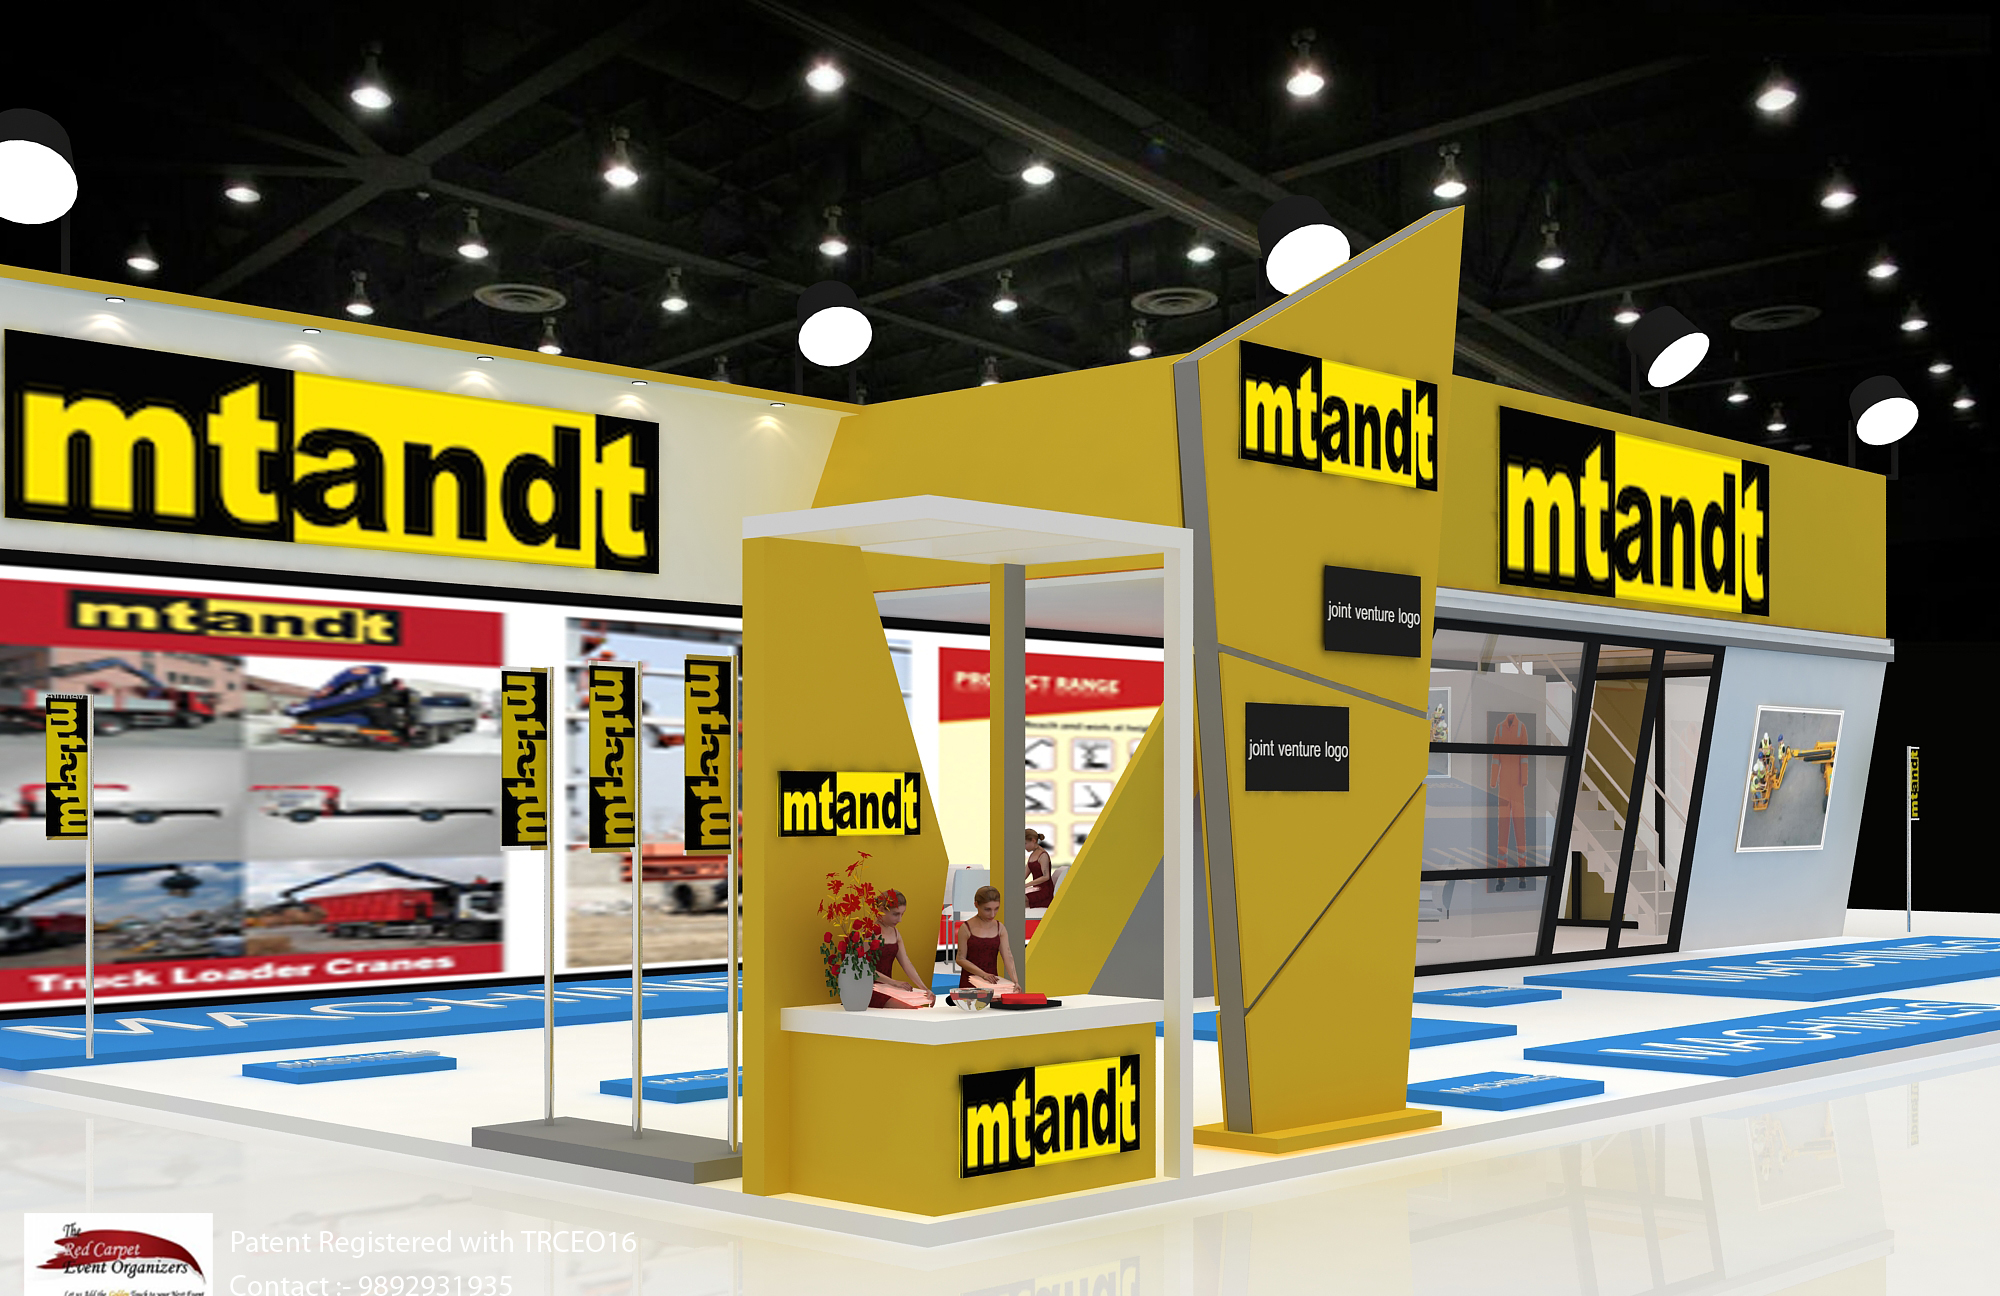 Stall reception view B C India Stall Design & Fabrication by The Red Carpet Event Organizers contact